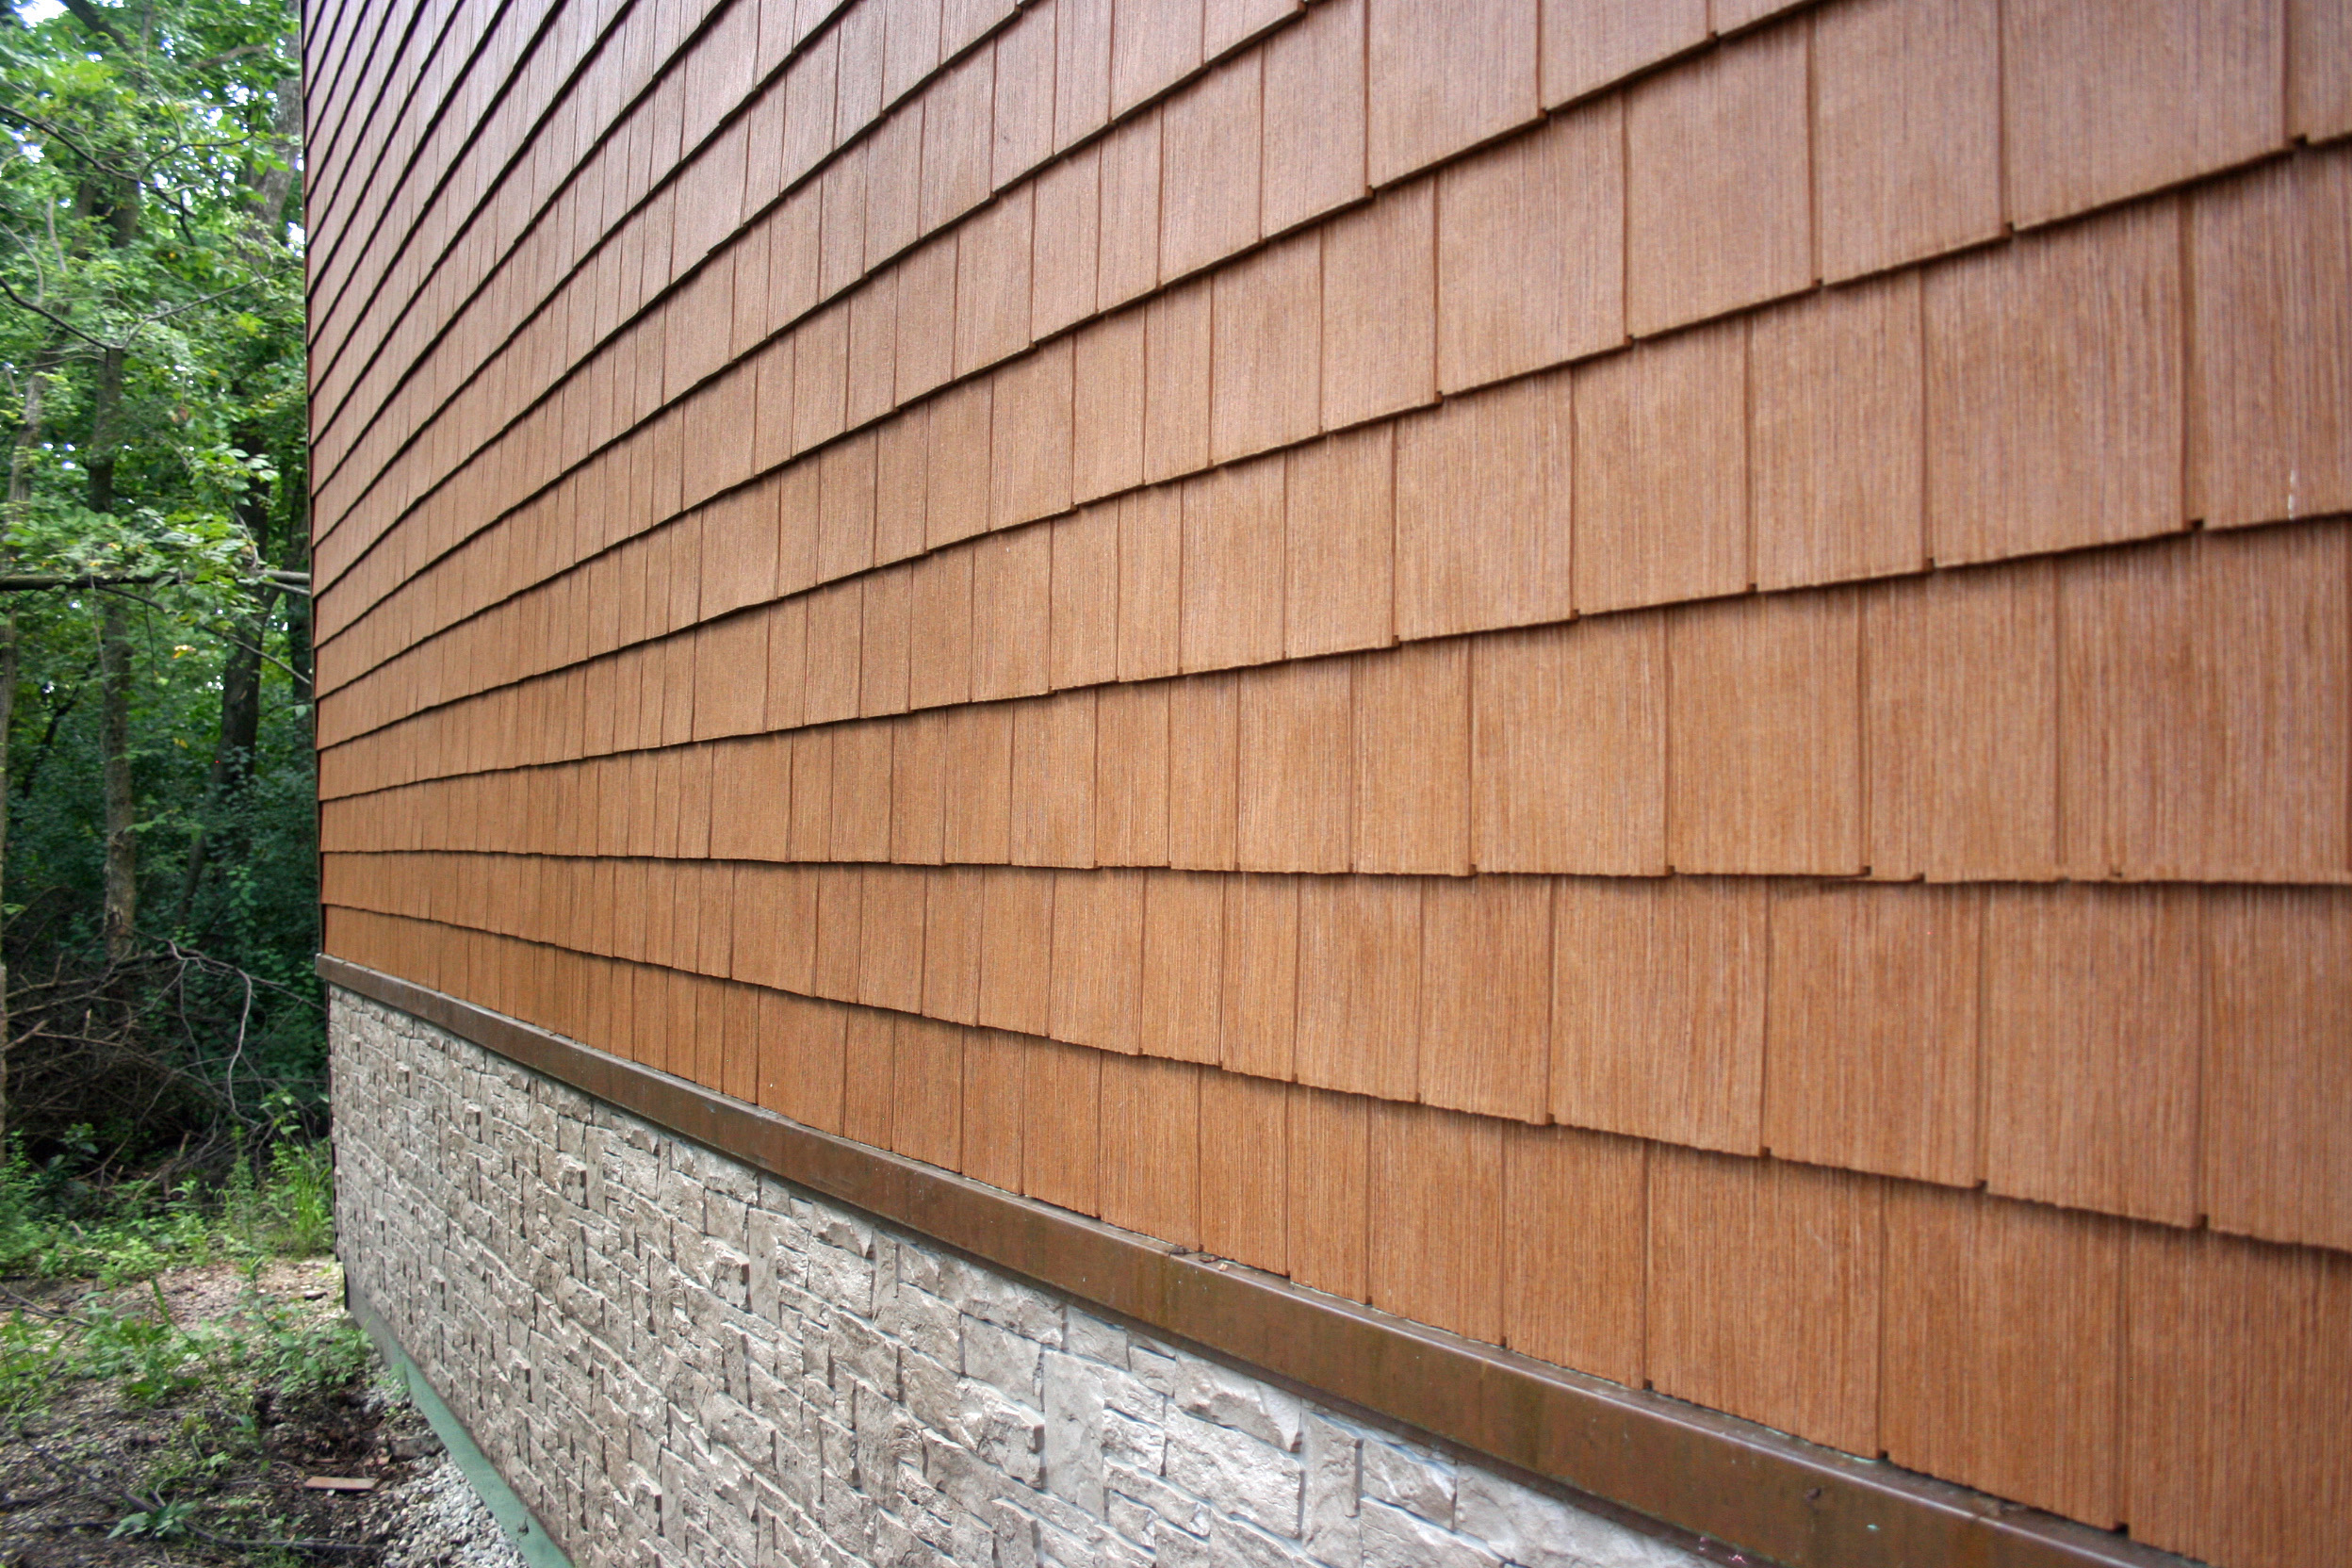 Exterior Cladding Product : Derby building products invests in new tando brand